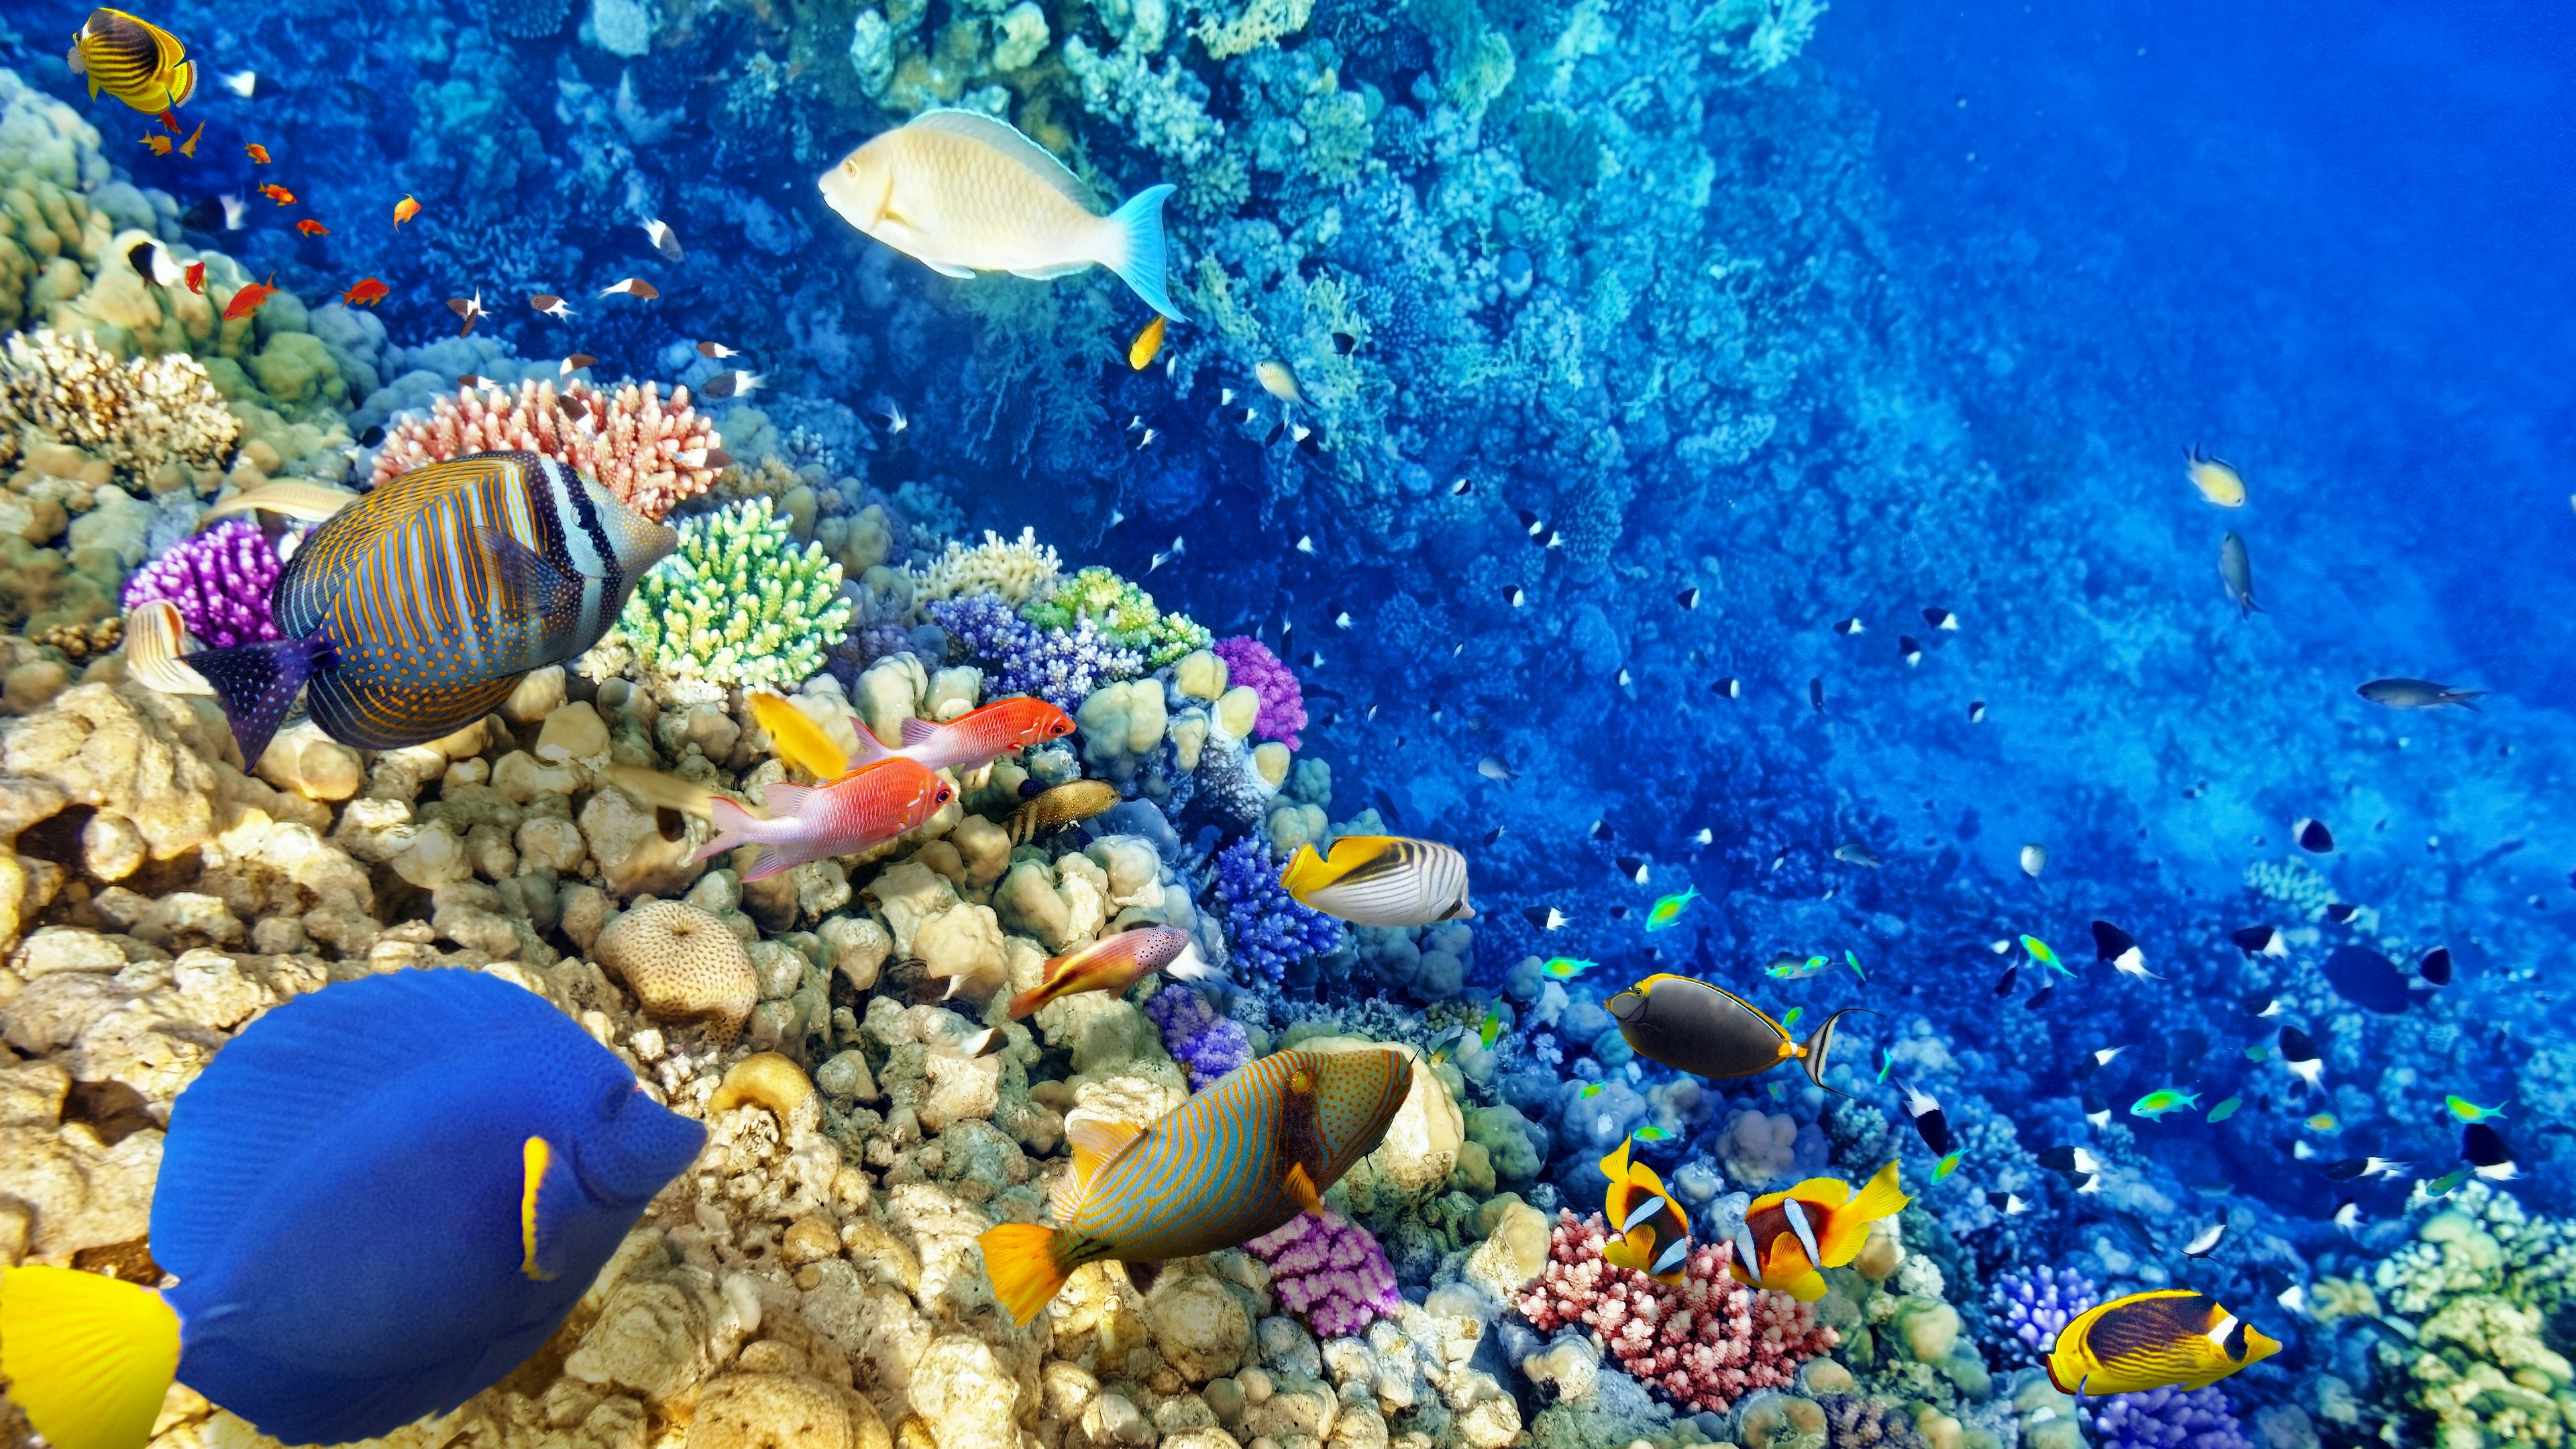 Coral Reef 4k Wallpapers Top Free Coral Reef 4k Backgrounds